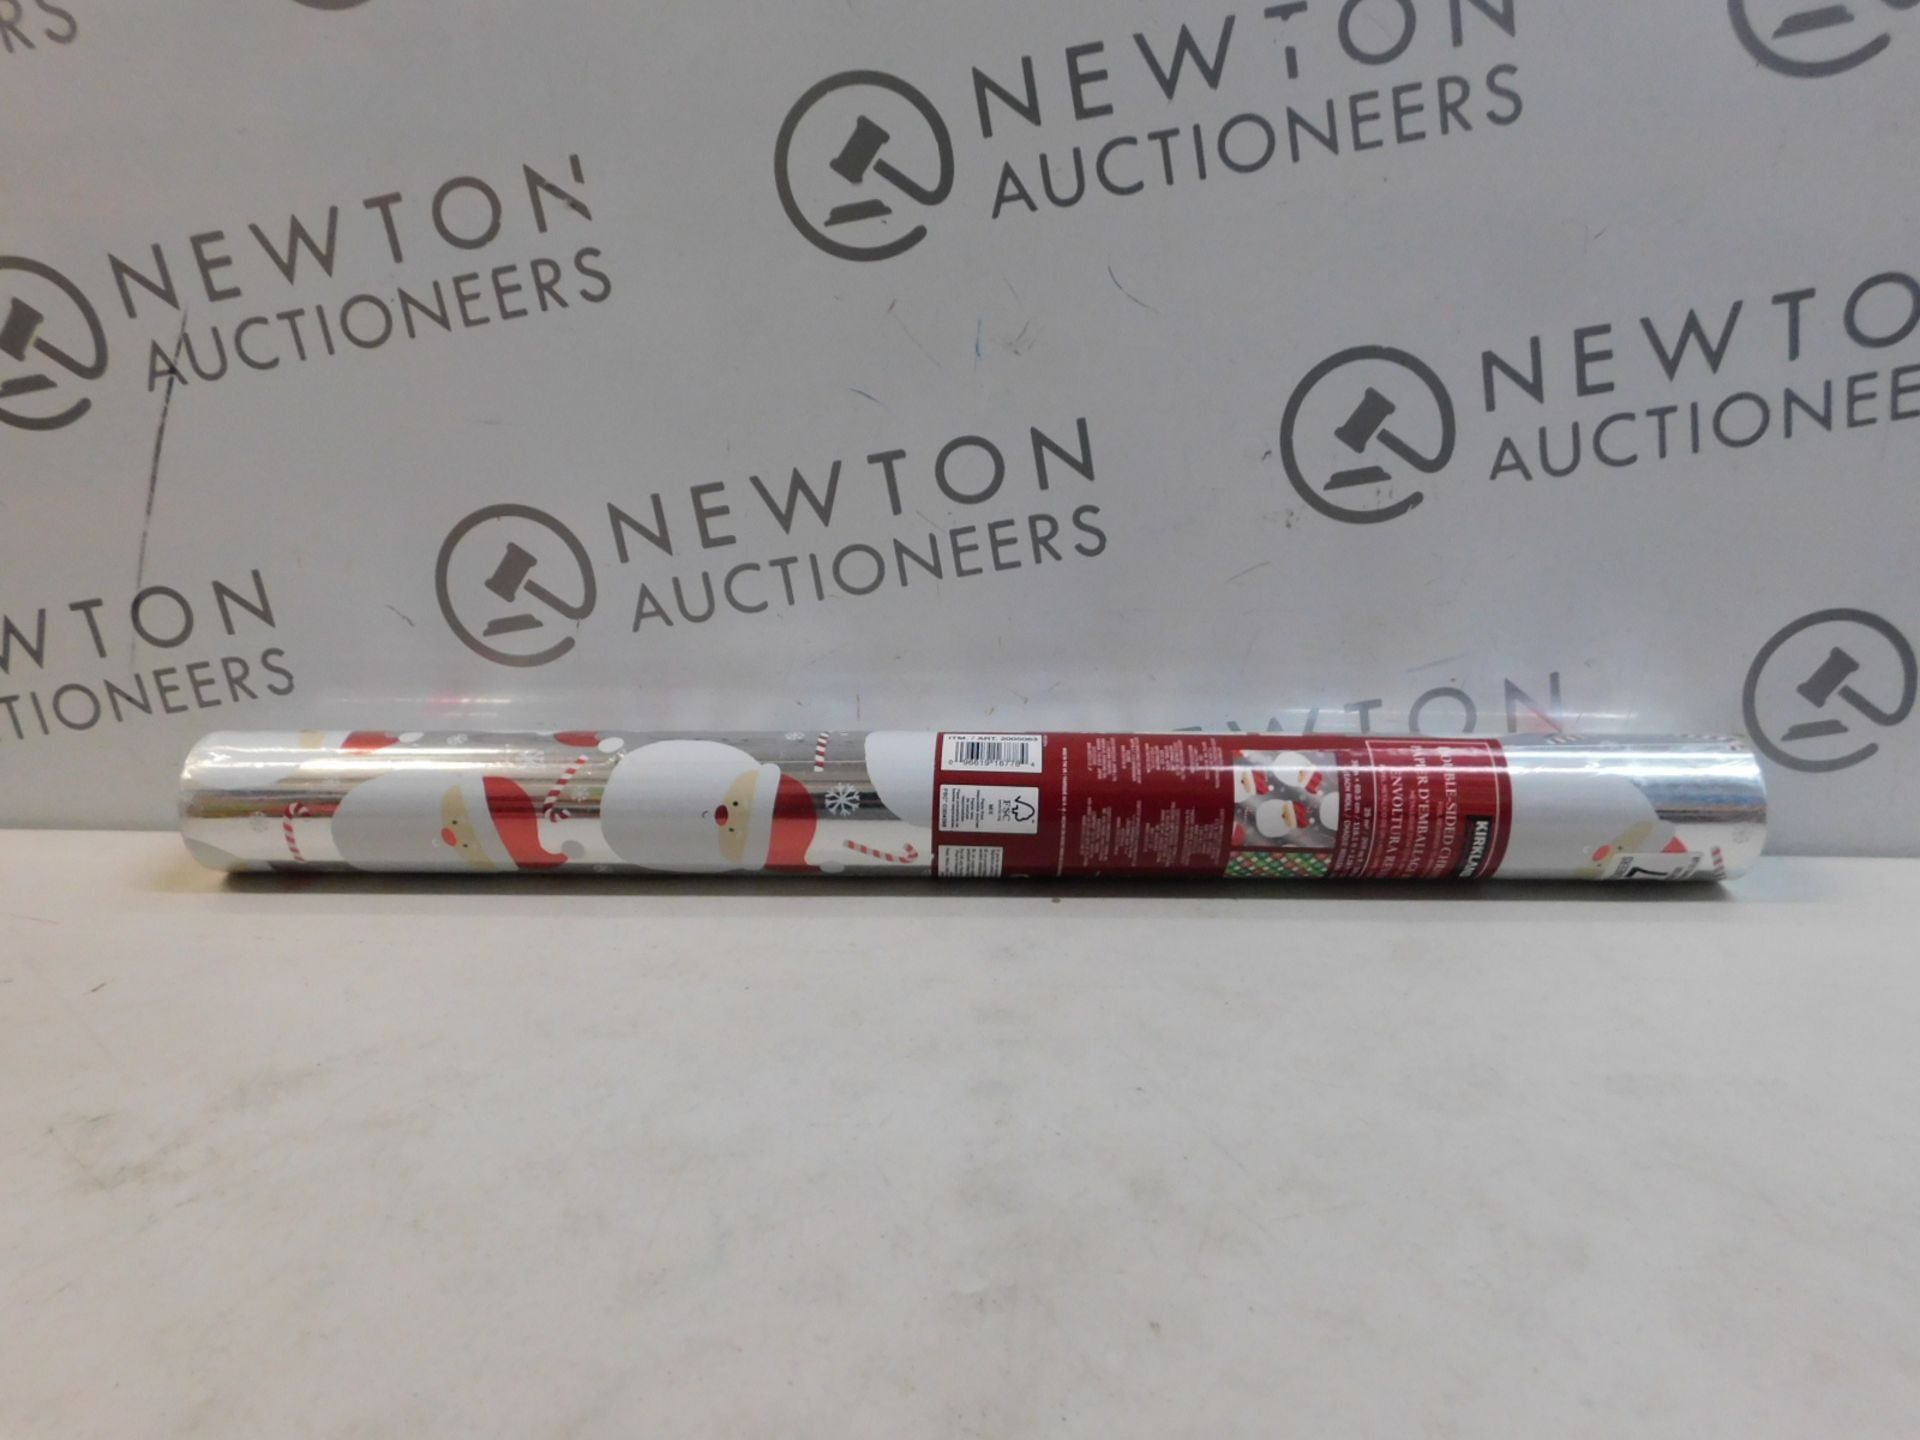 1 BRAND NEW ROLL OF KIRKLAND DOUBLE SIDDED 36M CHRISTMAS WRAPPING PAPER RRP £29.99